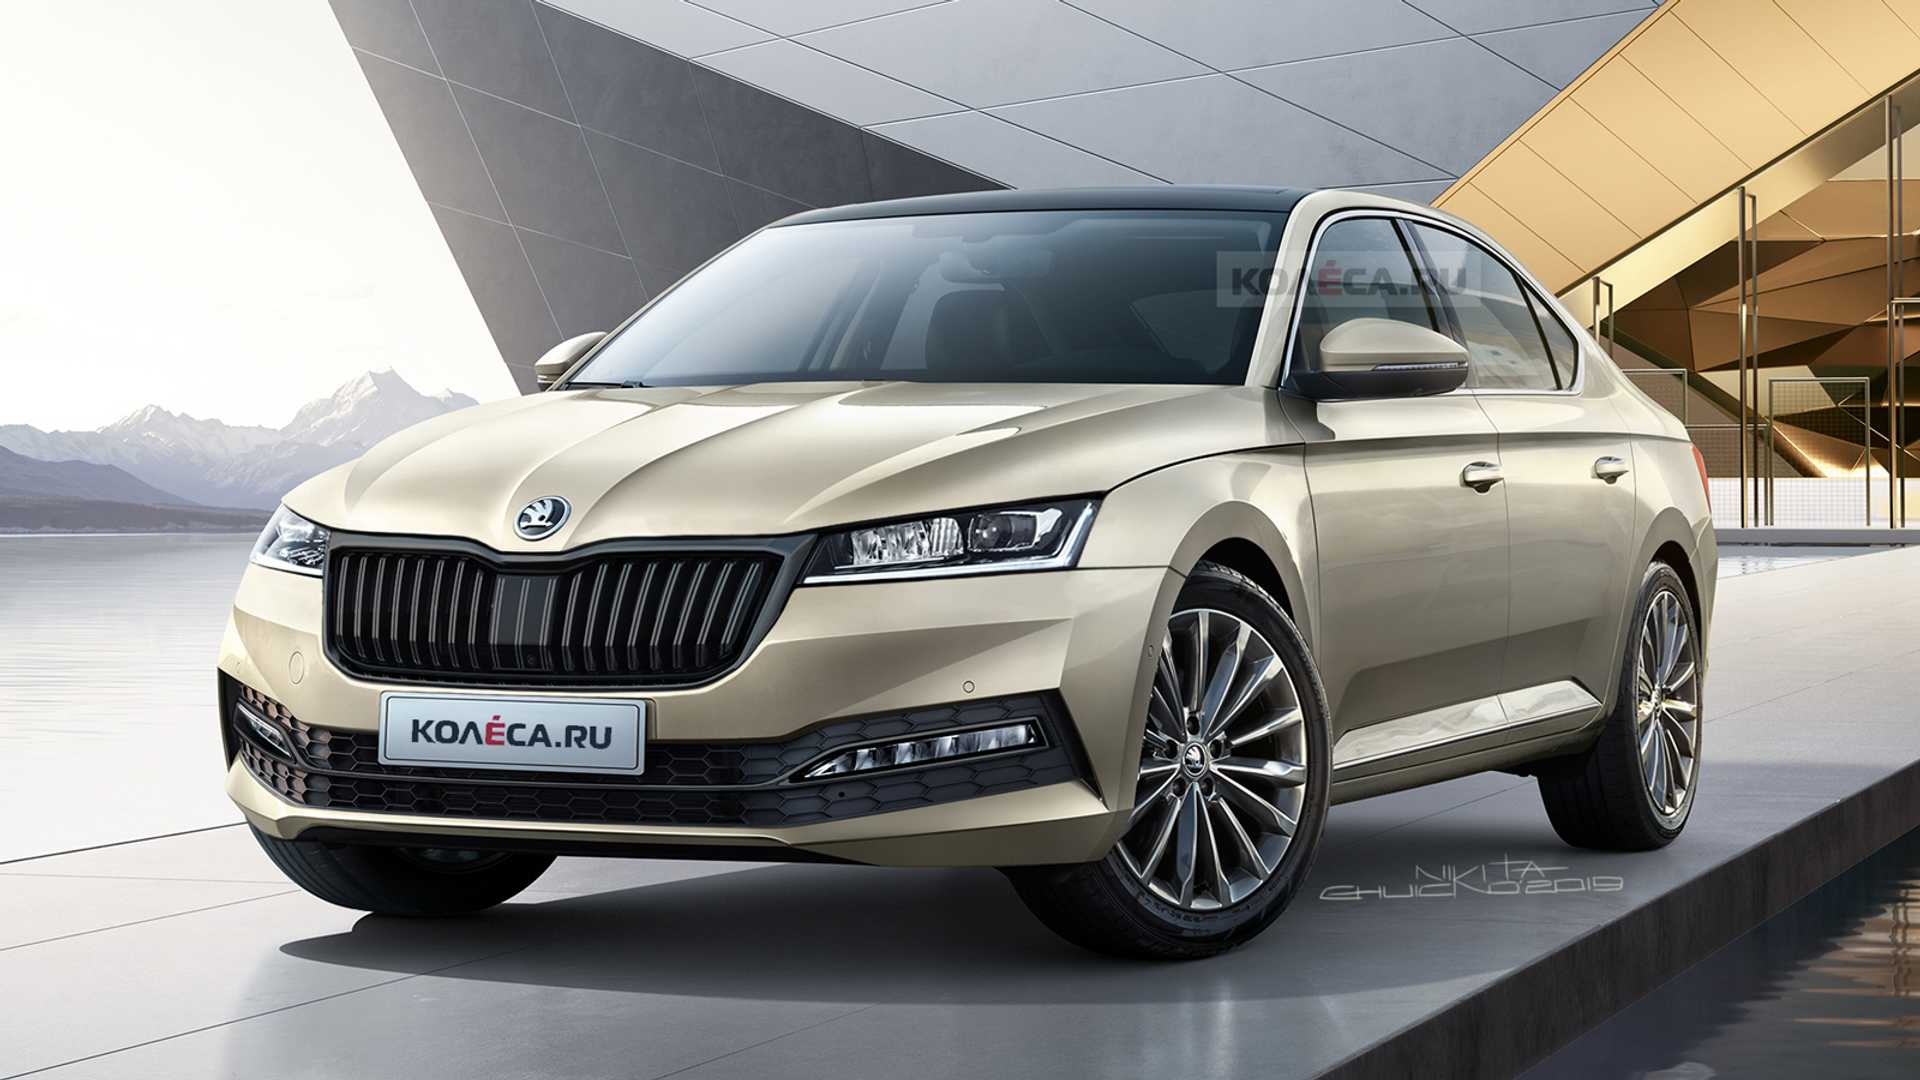 2020 New Skoda Superb Wallpaper